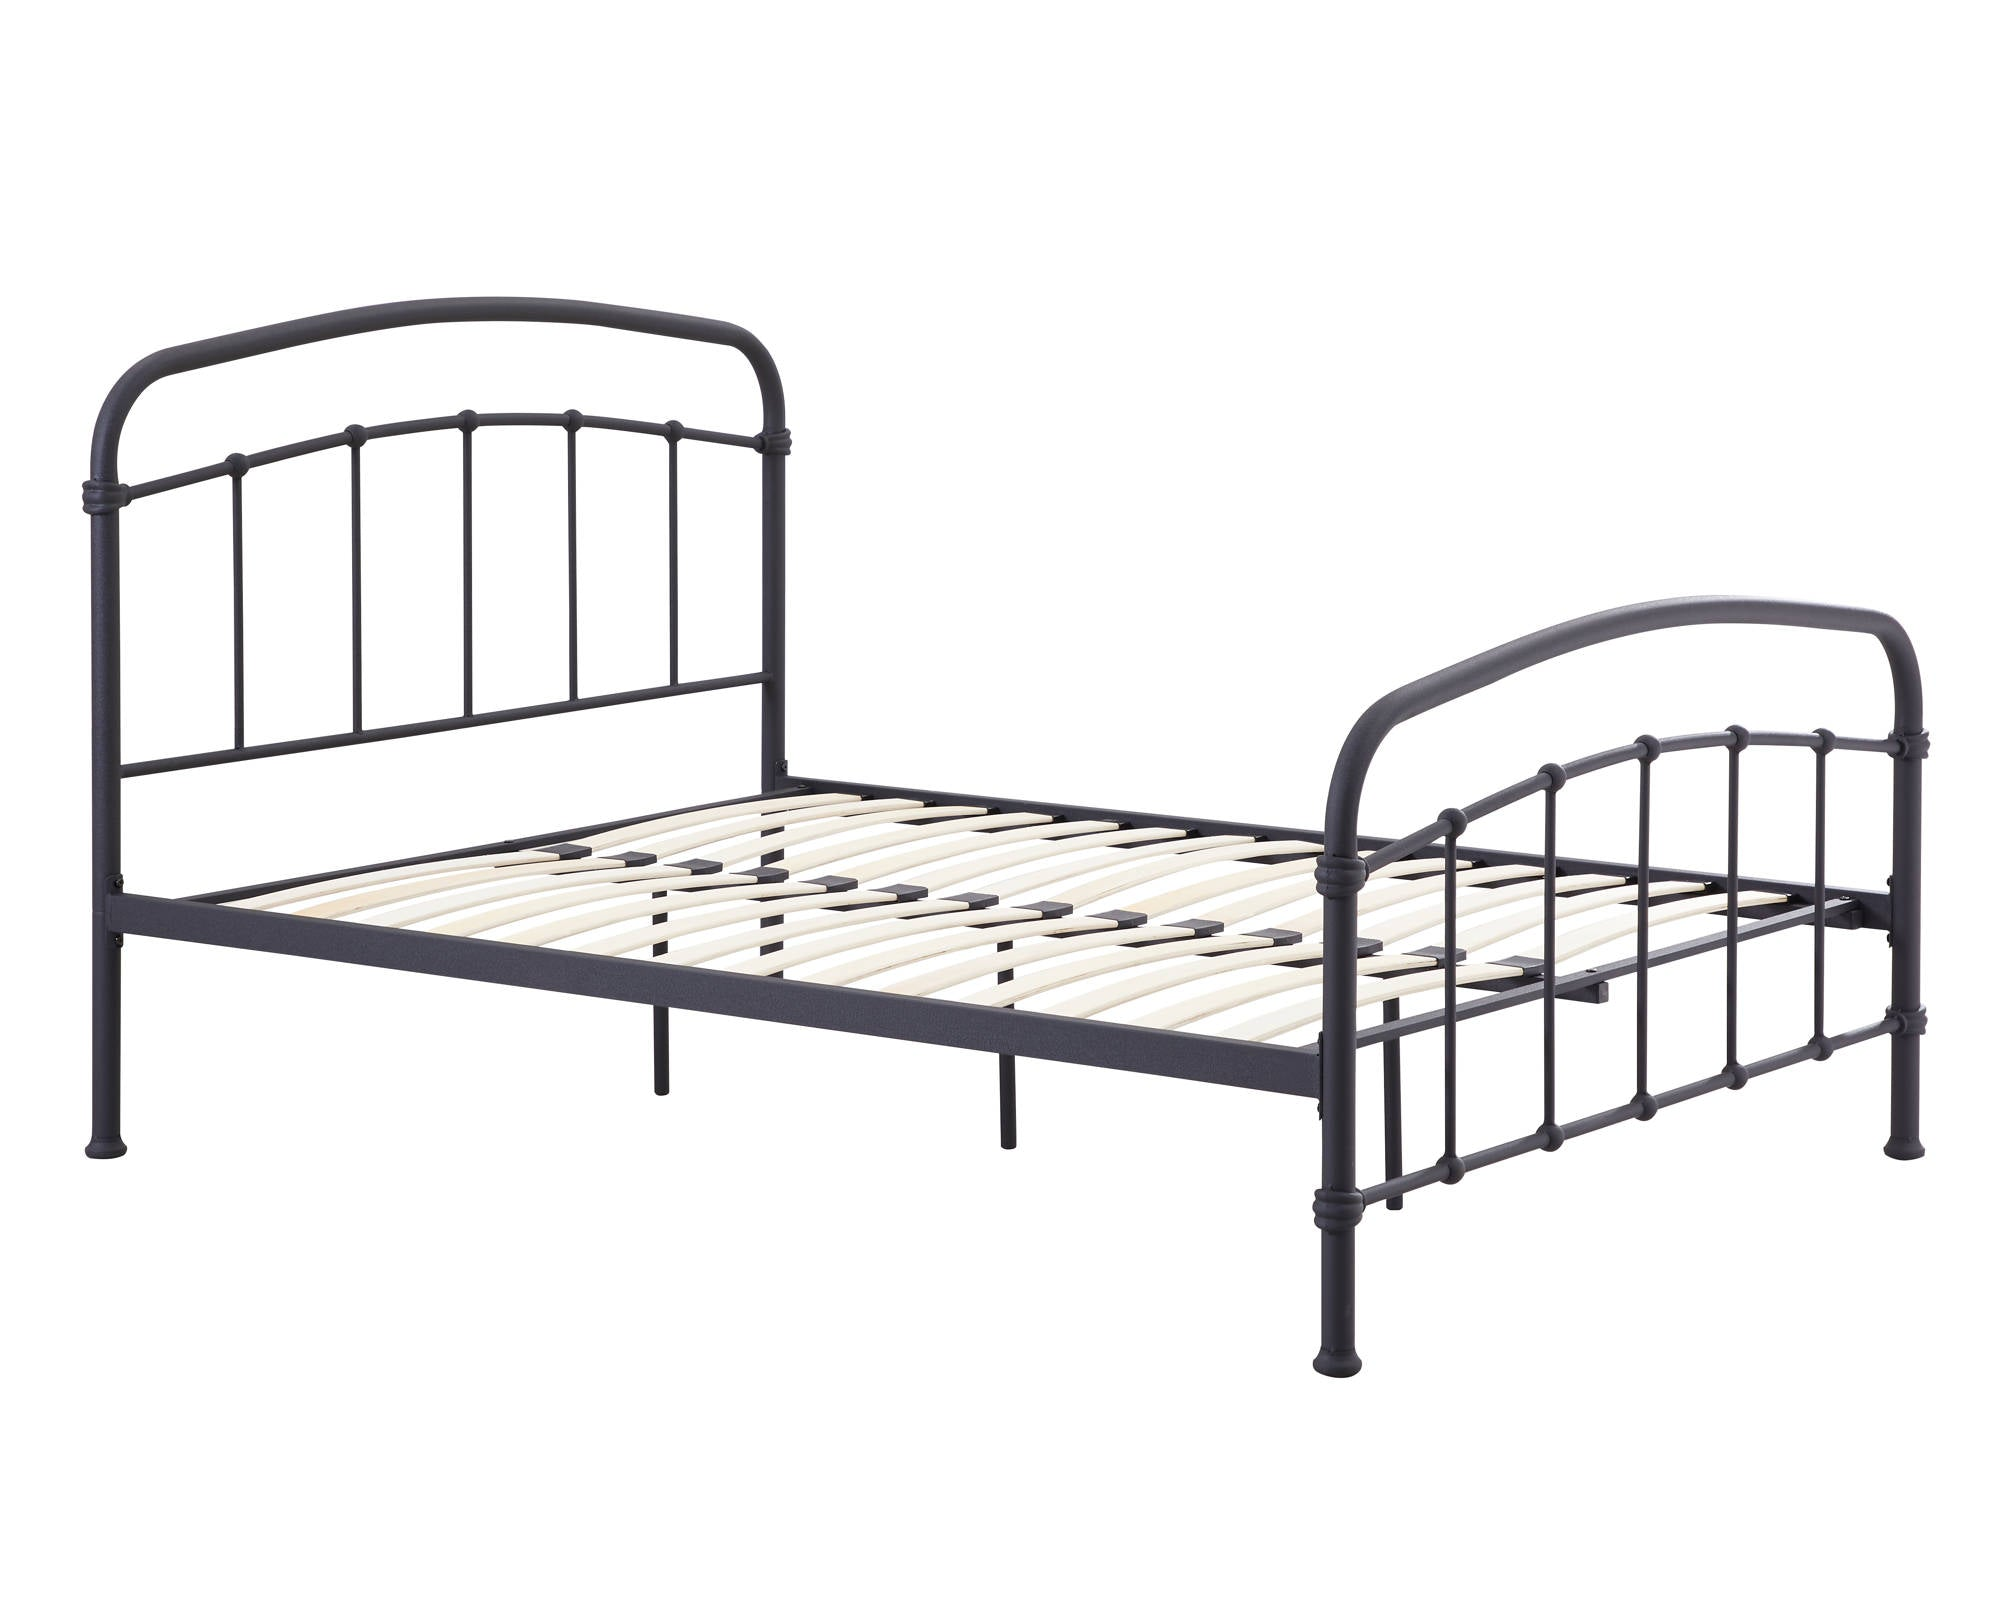 Stretton Single Bed in Black - Ezzo